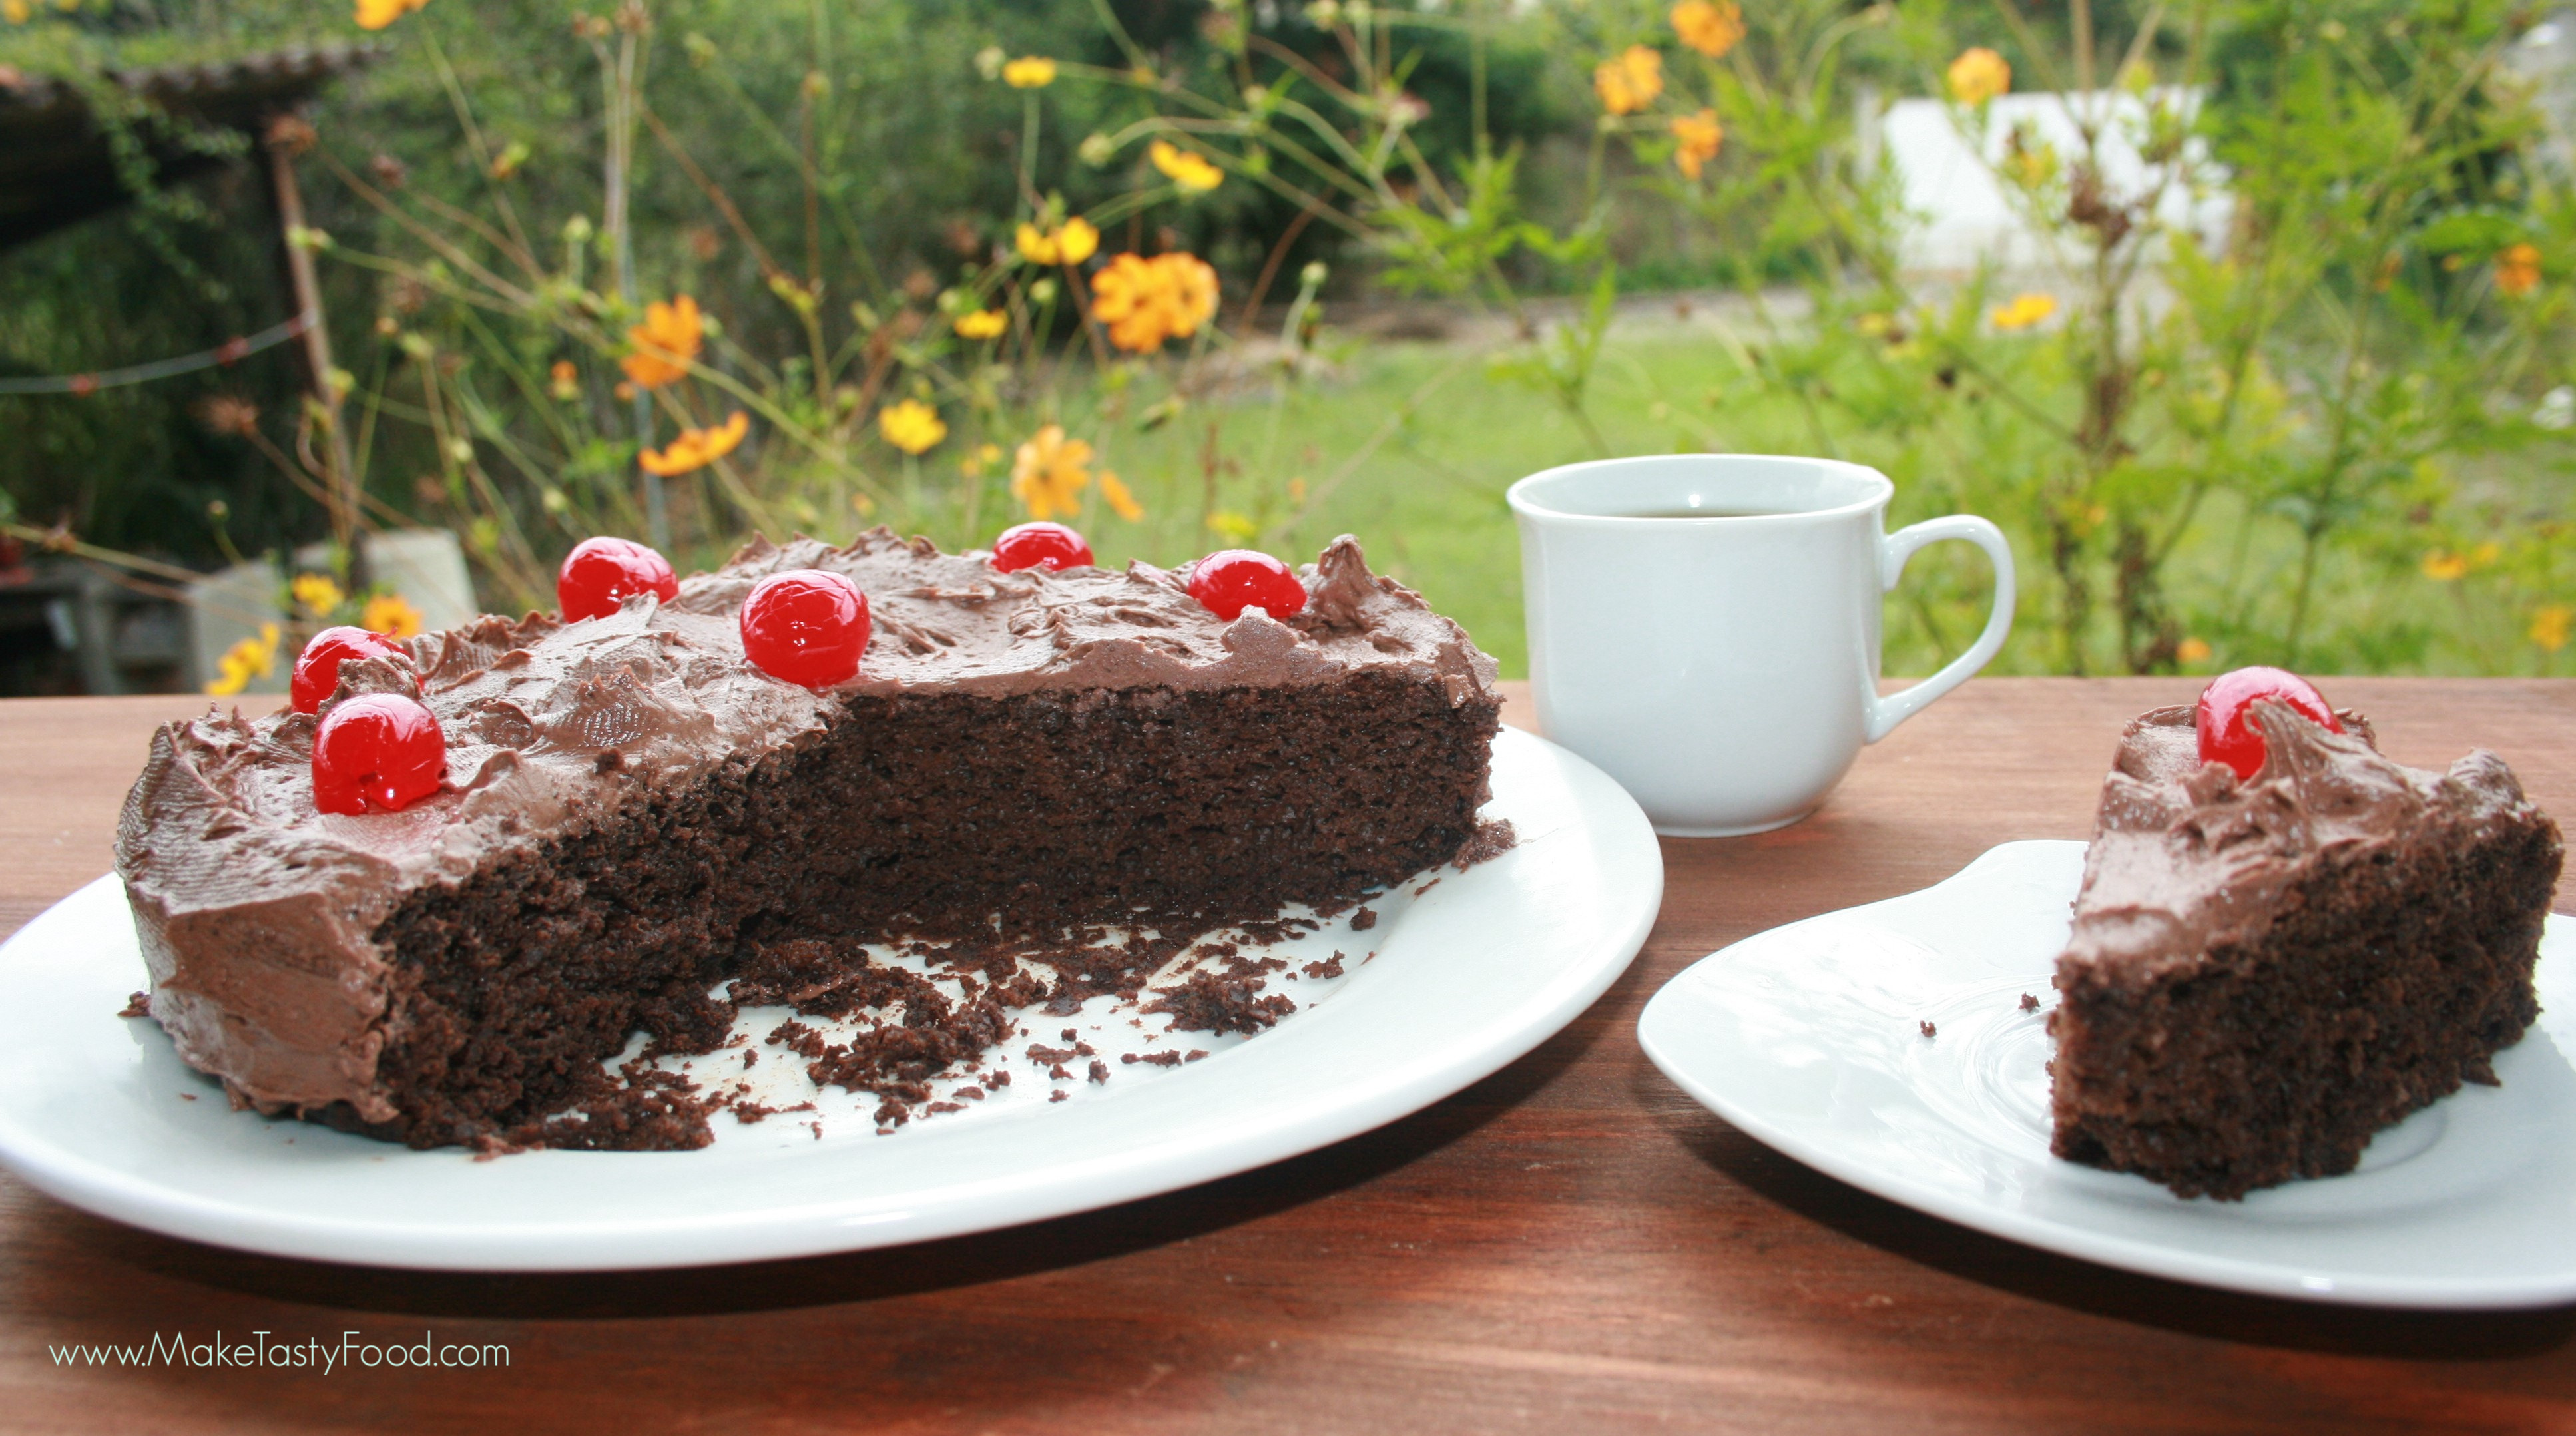 chocolate cake iced with cherries for tea